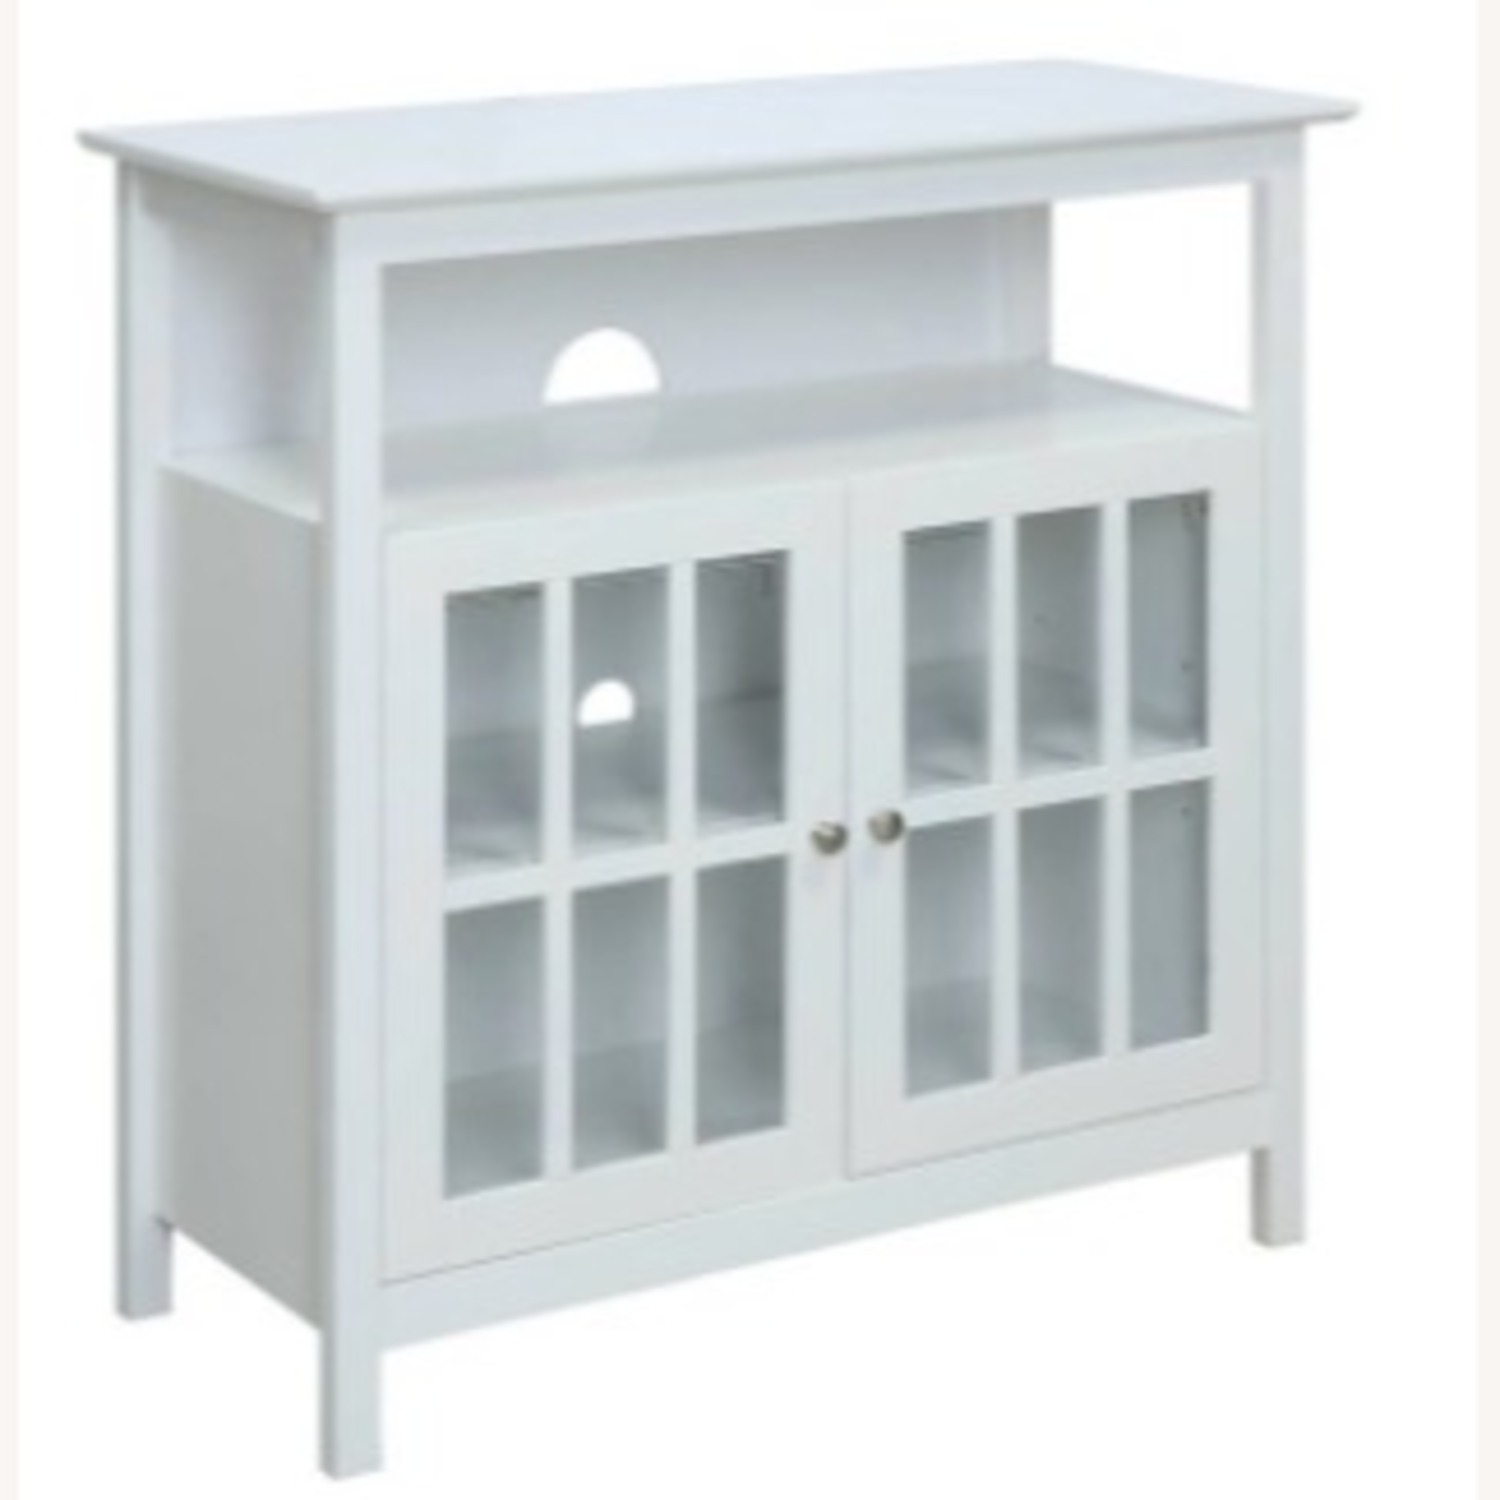 Convenience Concepts TV Stand with Storage Space - image-3